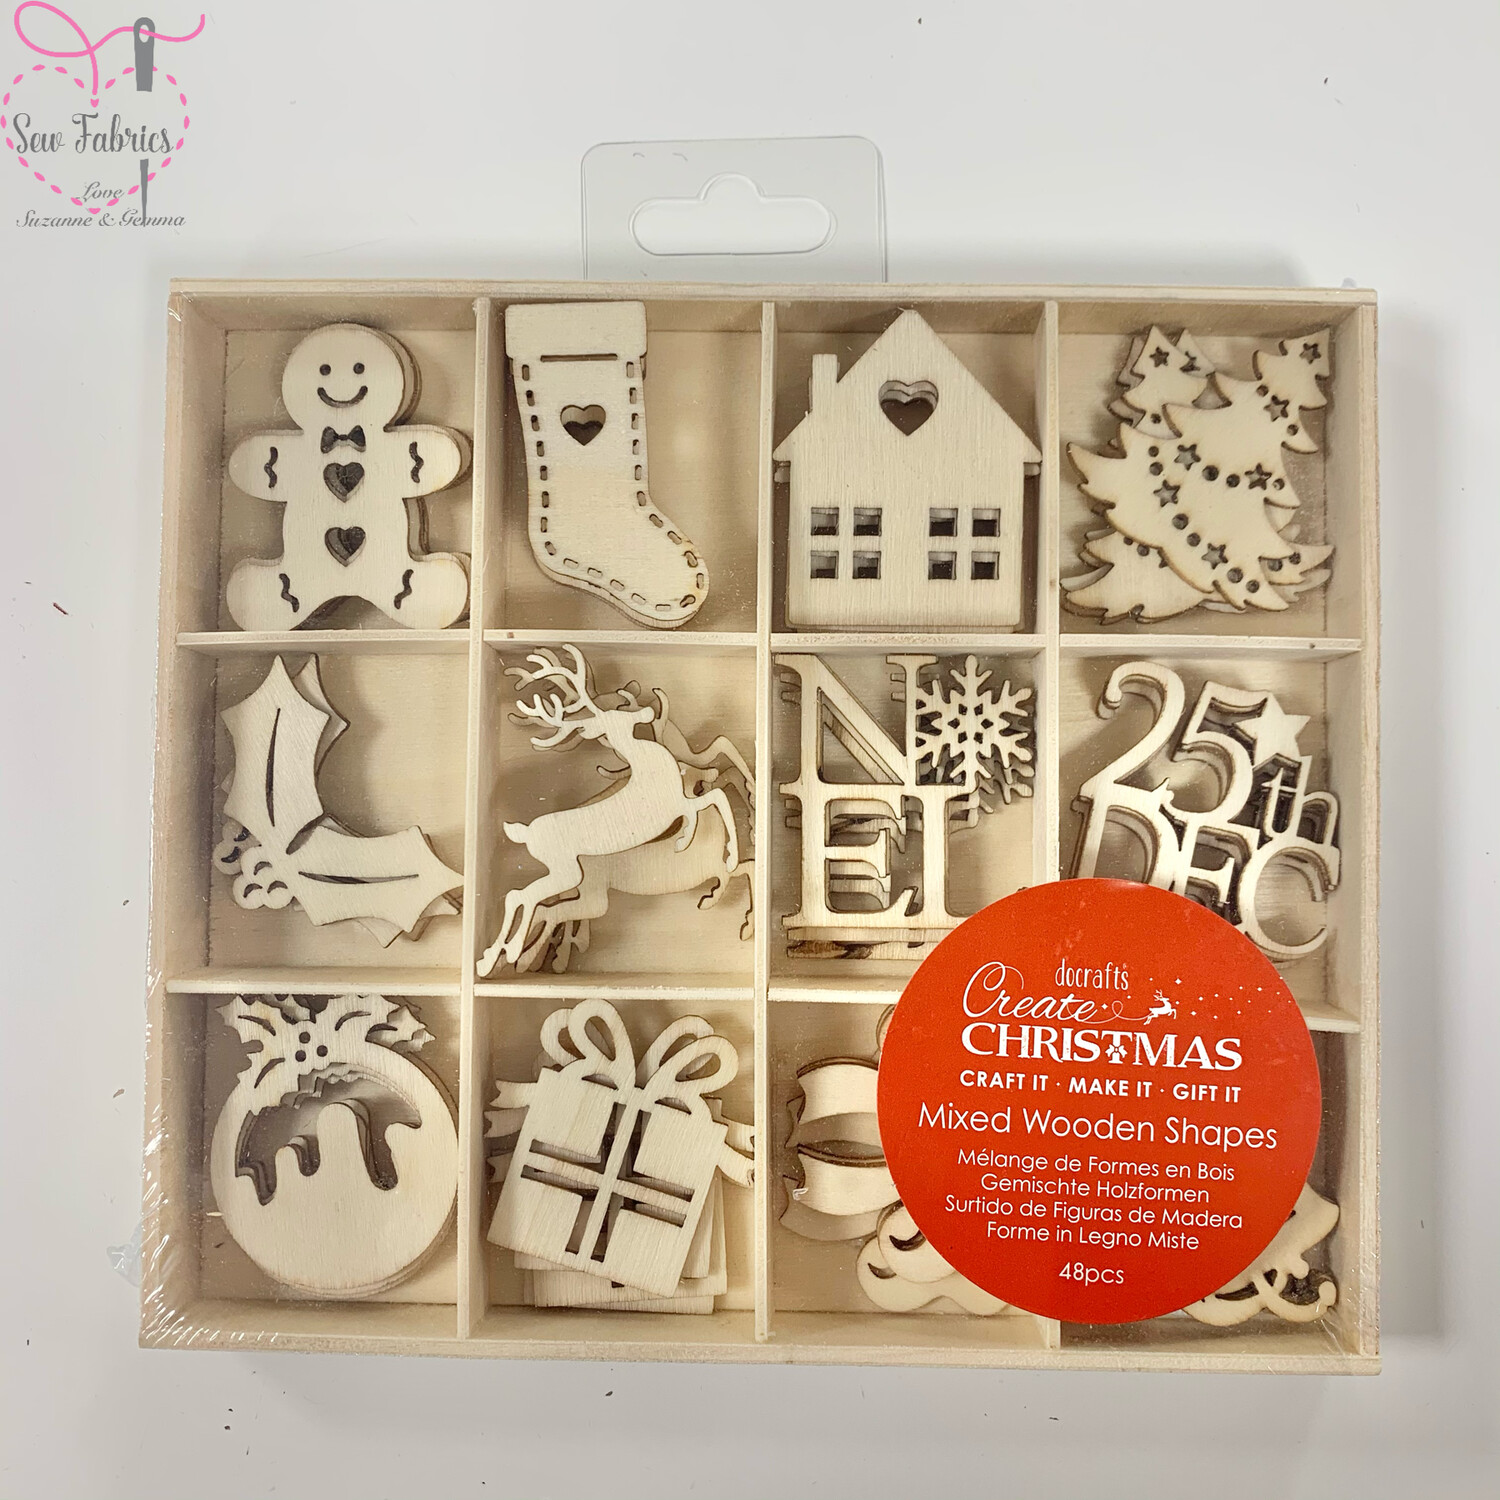 Docrafts Christmas Icons Mixed Wooden Shapes - 48 Piece Pack, Christmas Crafts